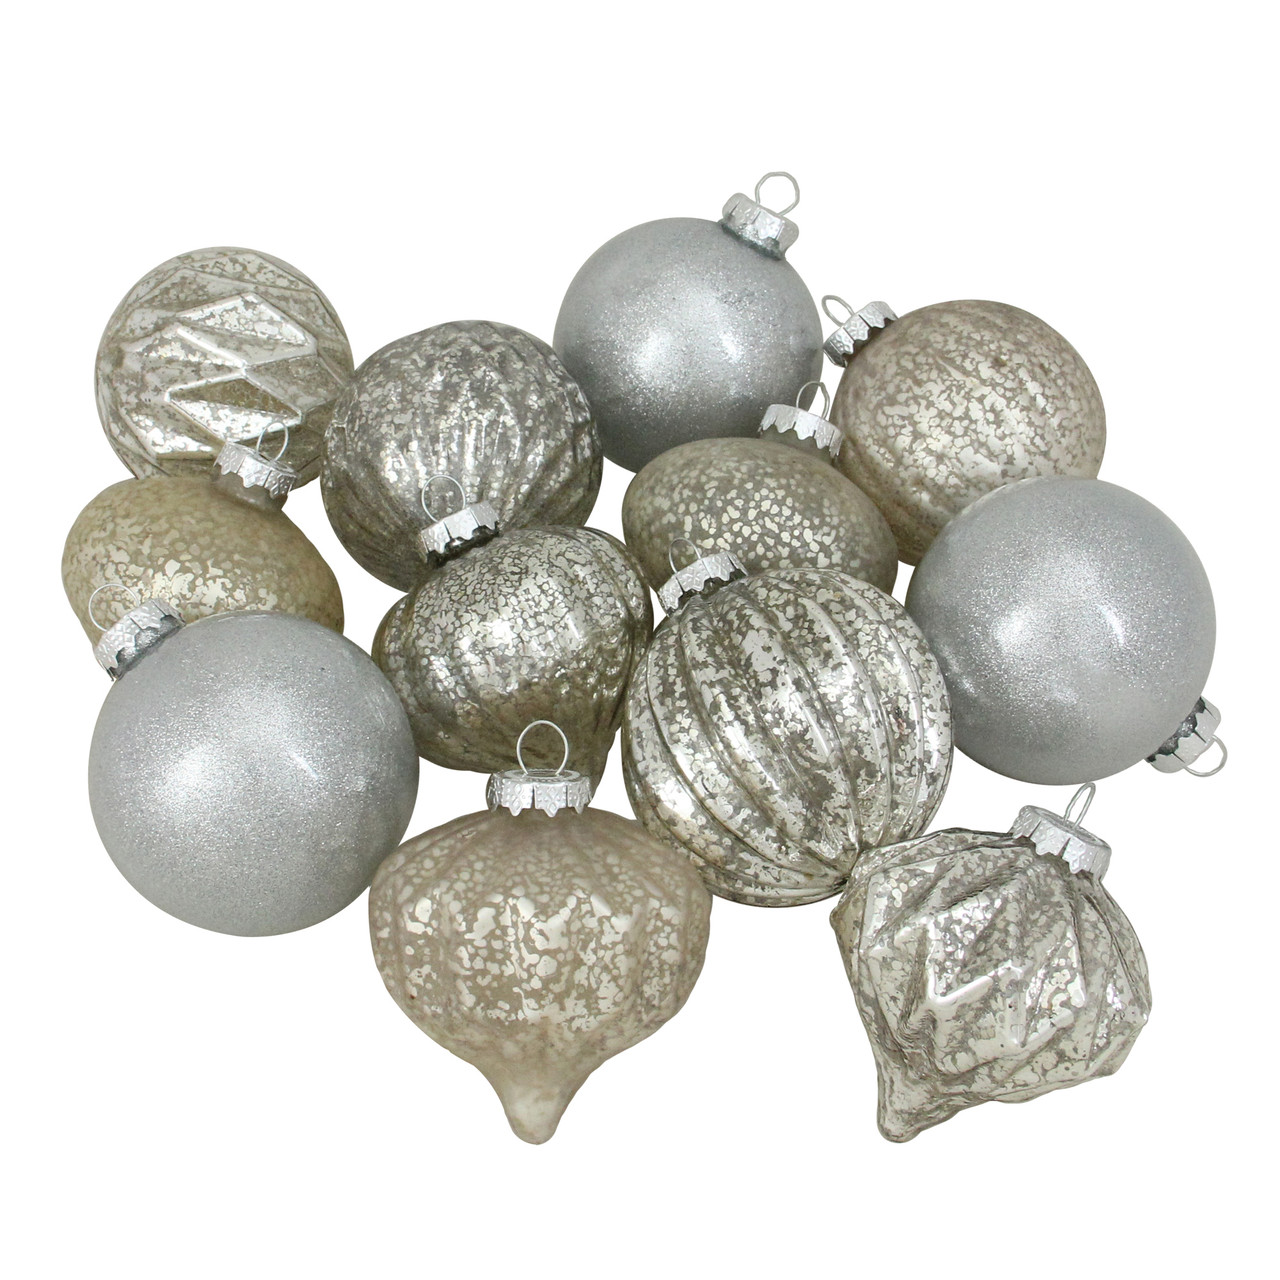 12ct Beige Silver 3 Finish Glass Christmas Ornaments 3 75 Christmas Central